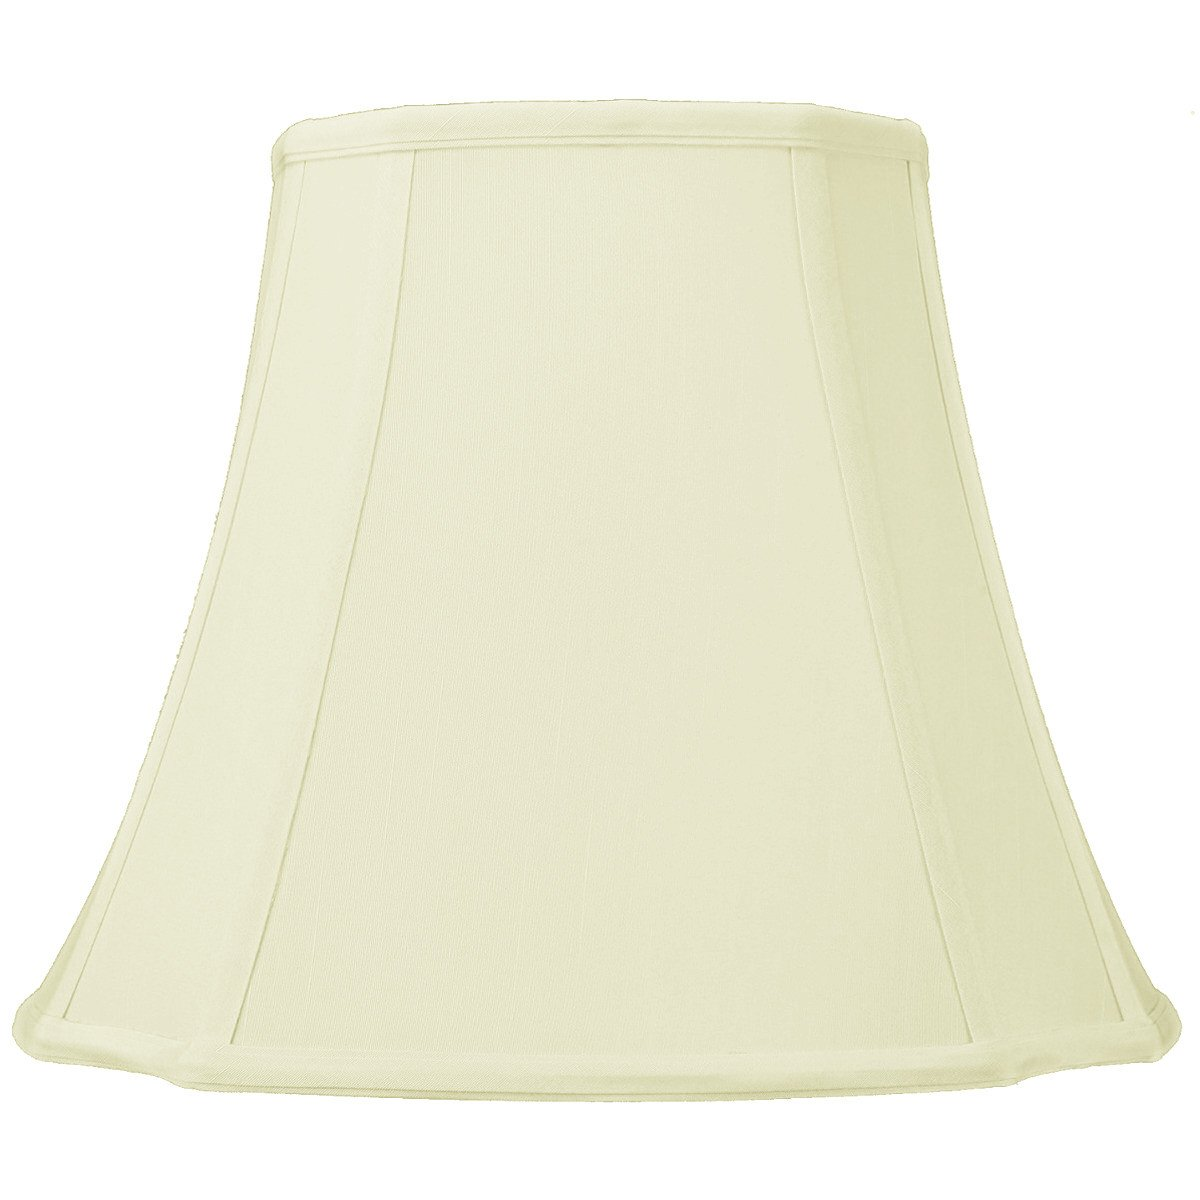 7x12x11 French Oval Eggshell Lampshade with Brass Spider Fitter by Home Concept - Perfect for small table lamps, and Desk Lamps - Medium, Egg Shell